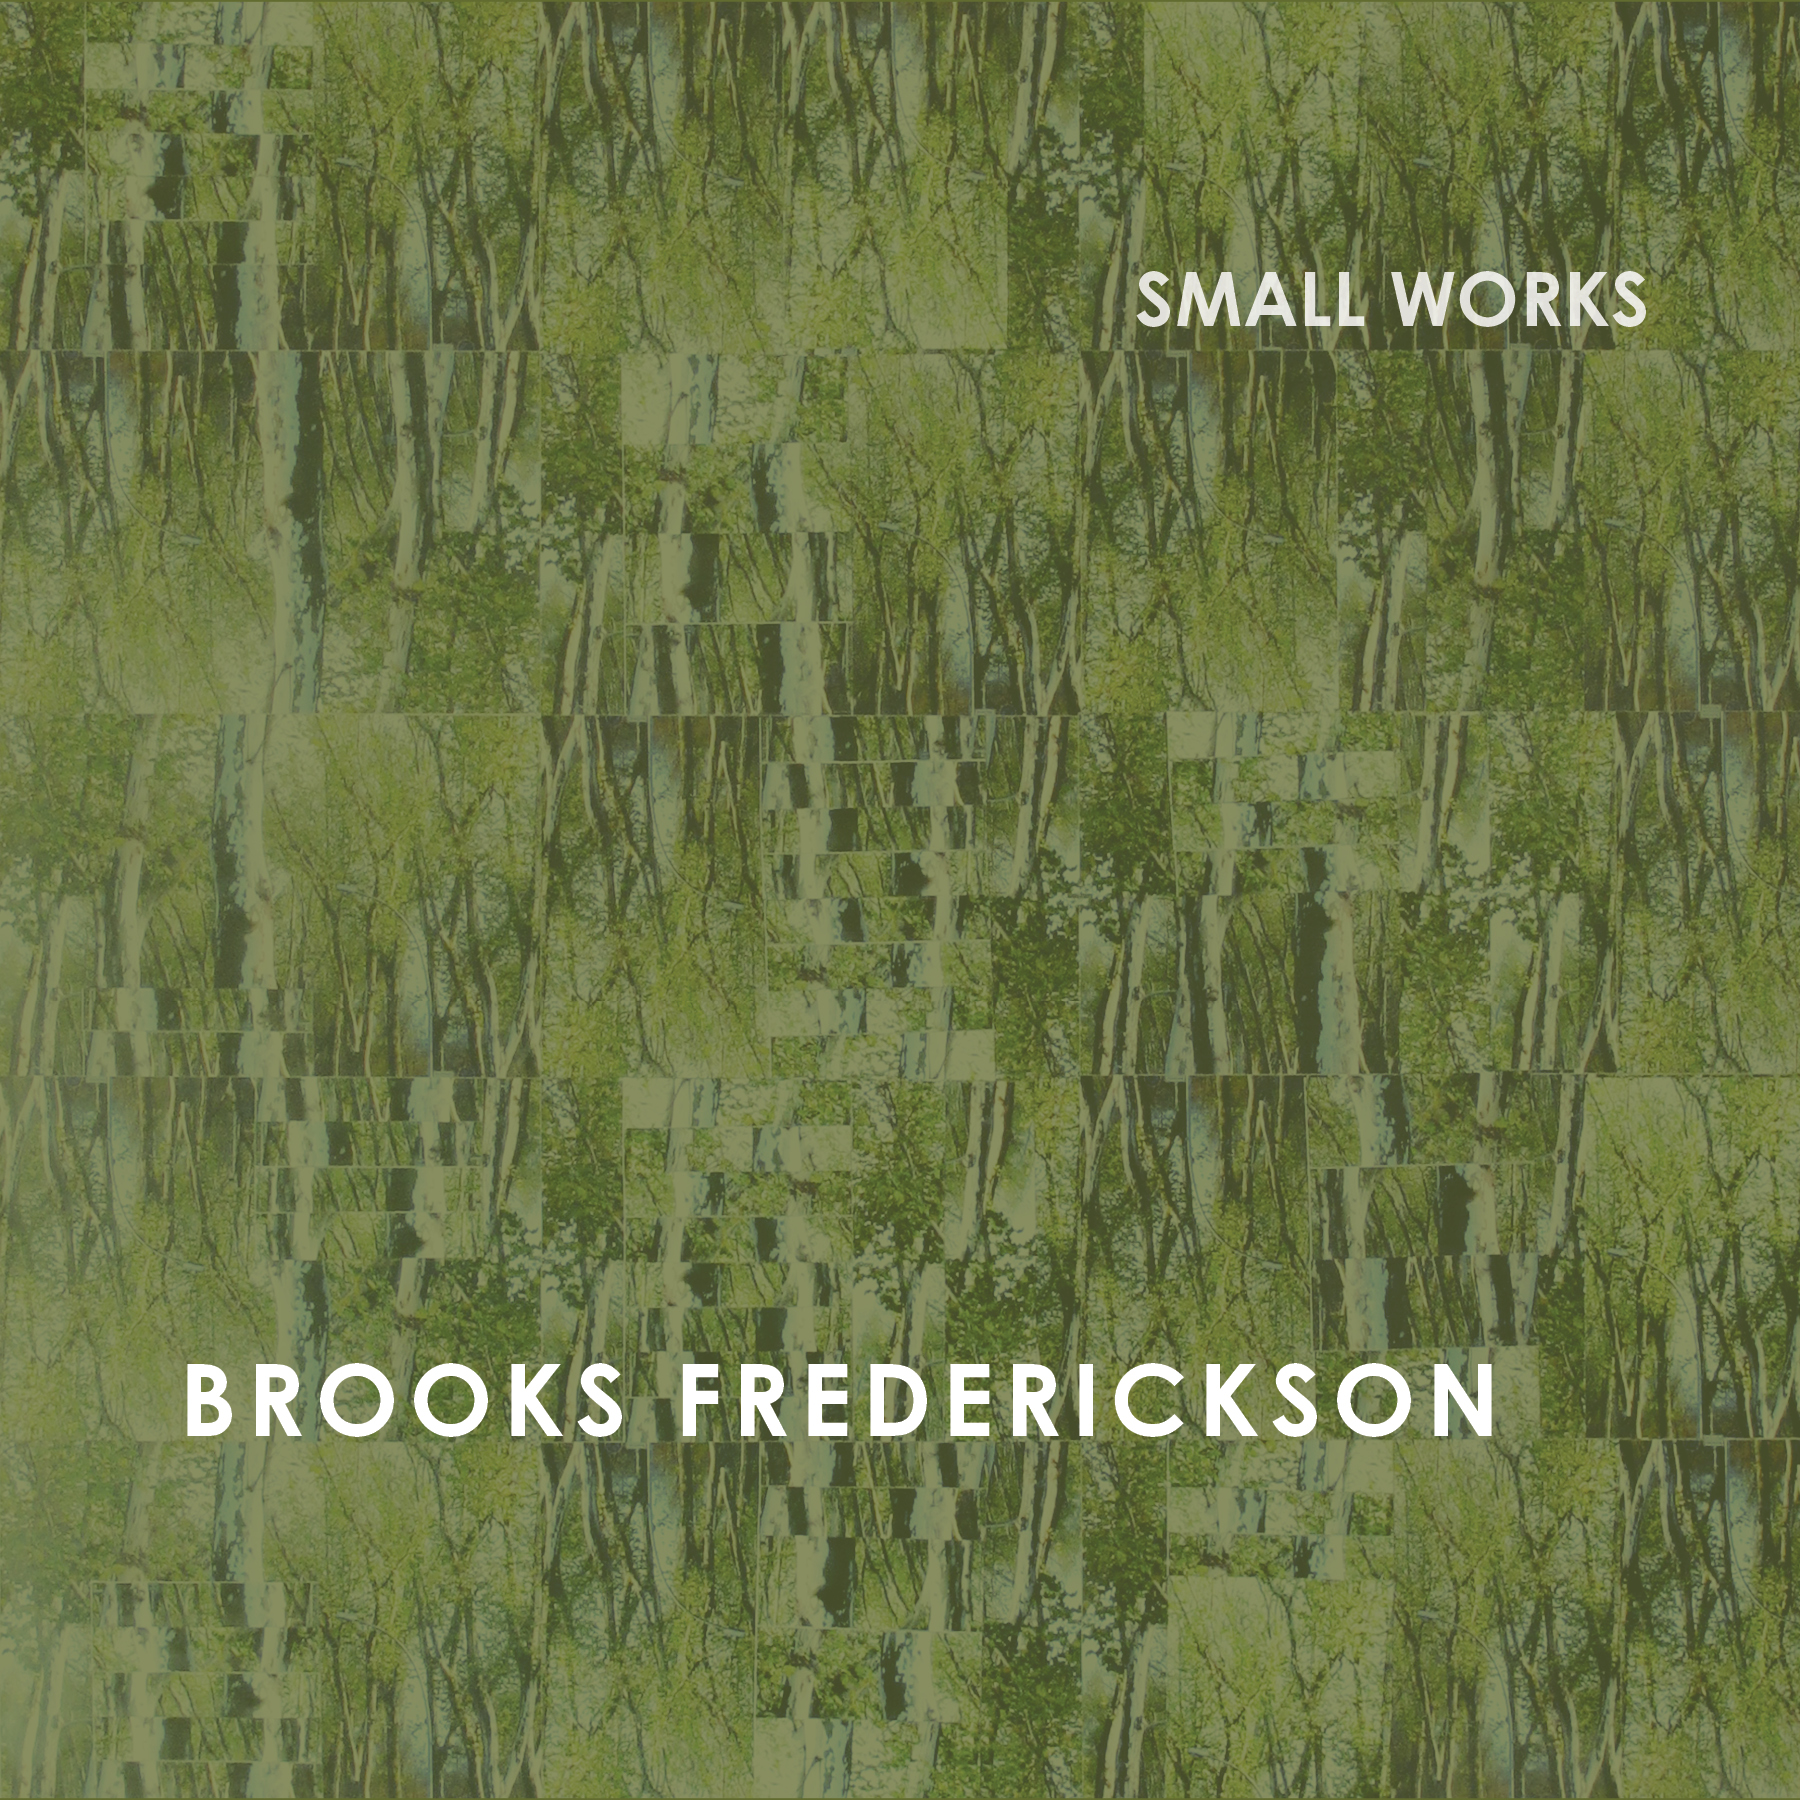 Brooks Frederickson - Small Works Album - Digital Booklet - FINAL.jpg